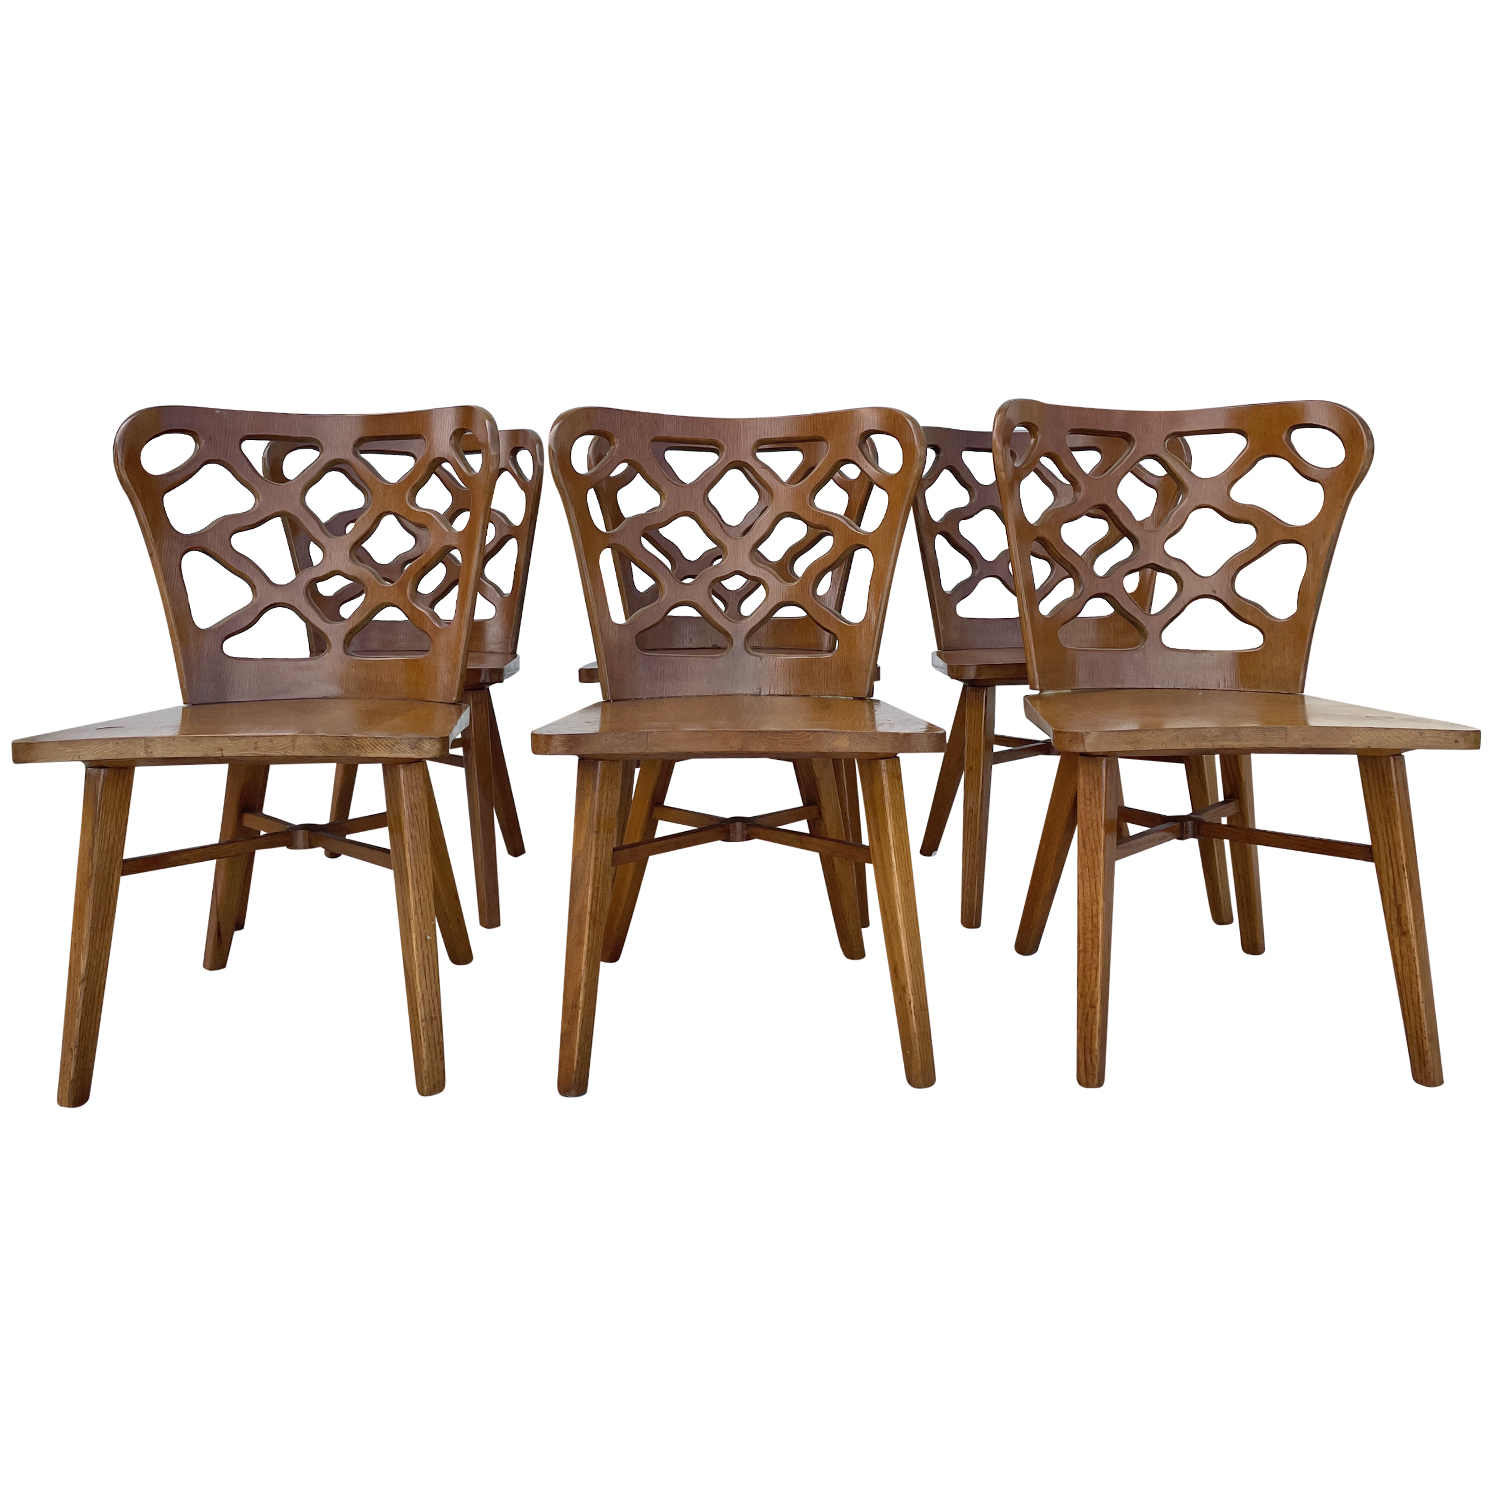 20th Century American Set of Six Oakwood, Bent Plywood Dining Chairs by RomWeber